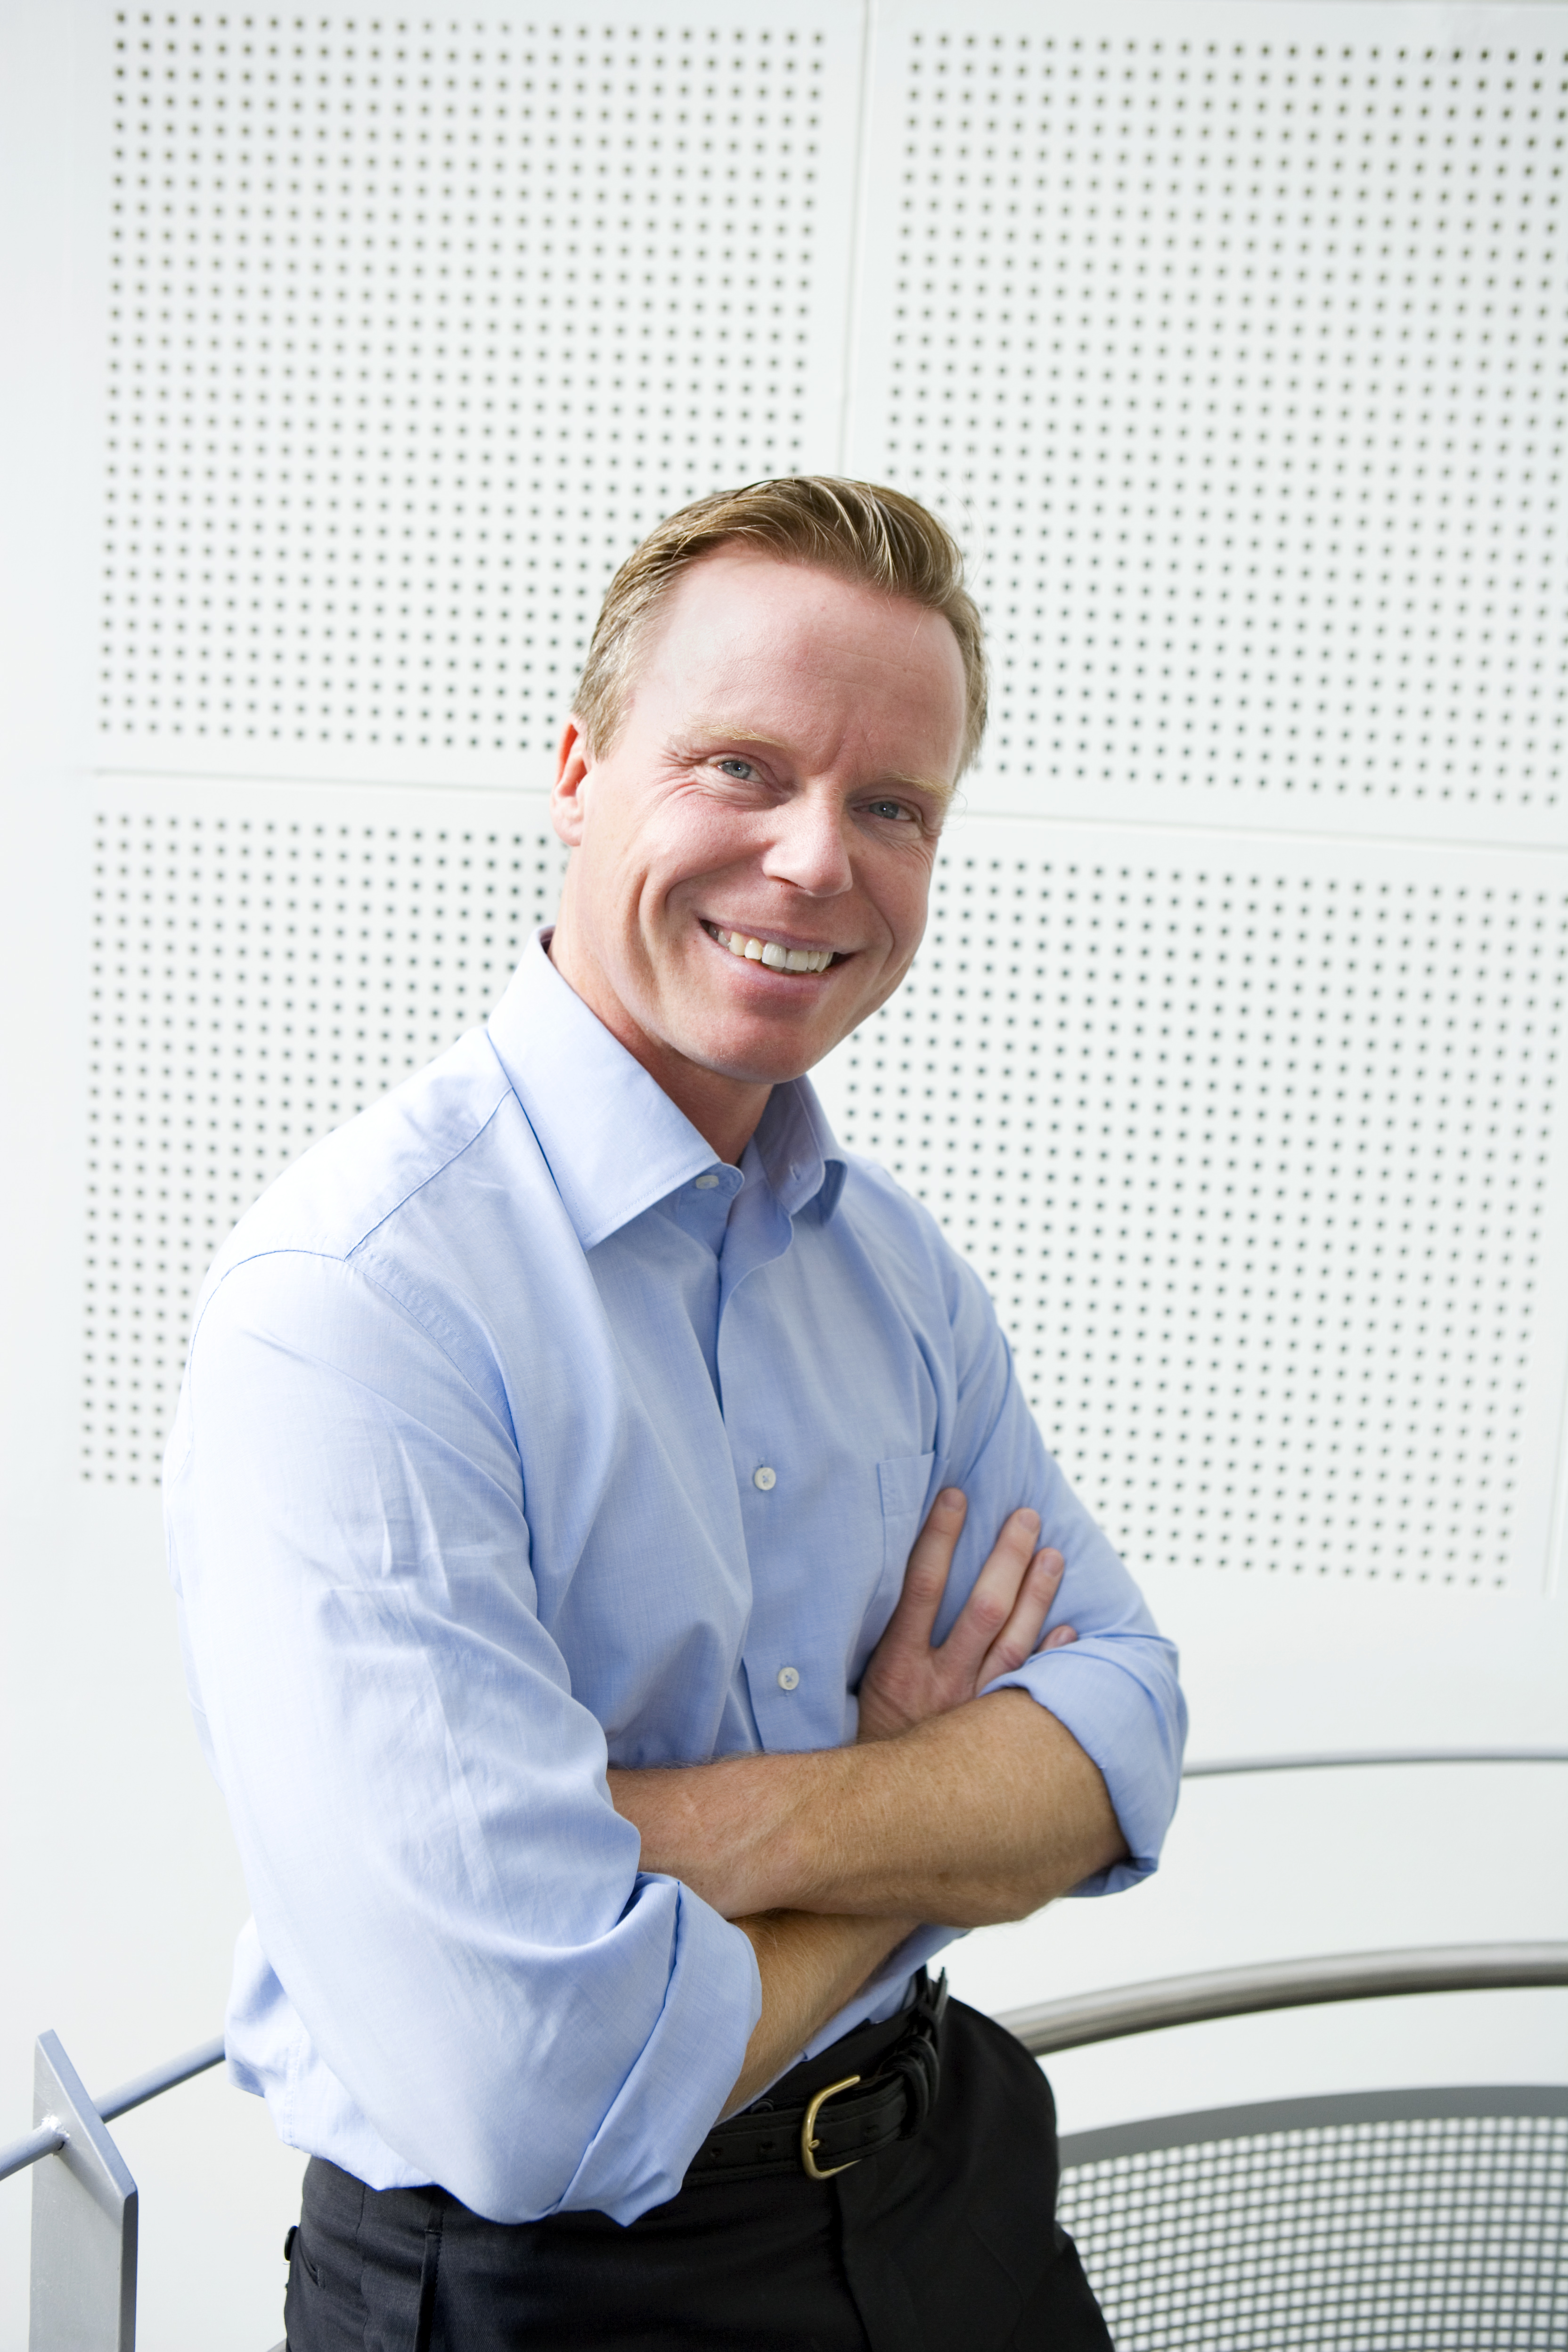 Eiric Pedersen, CEO for Proact in Norway